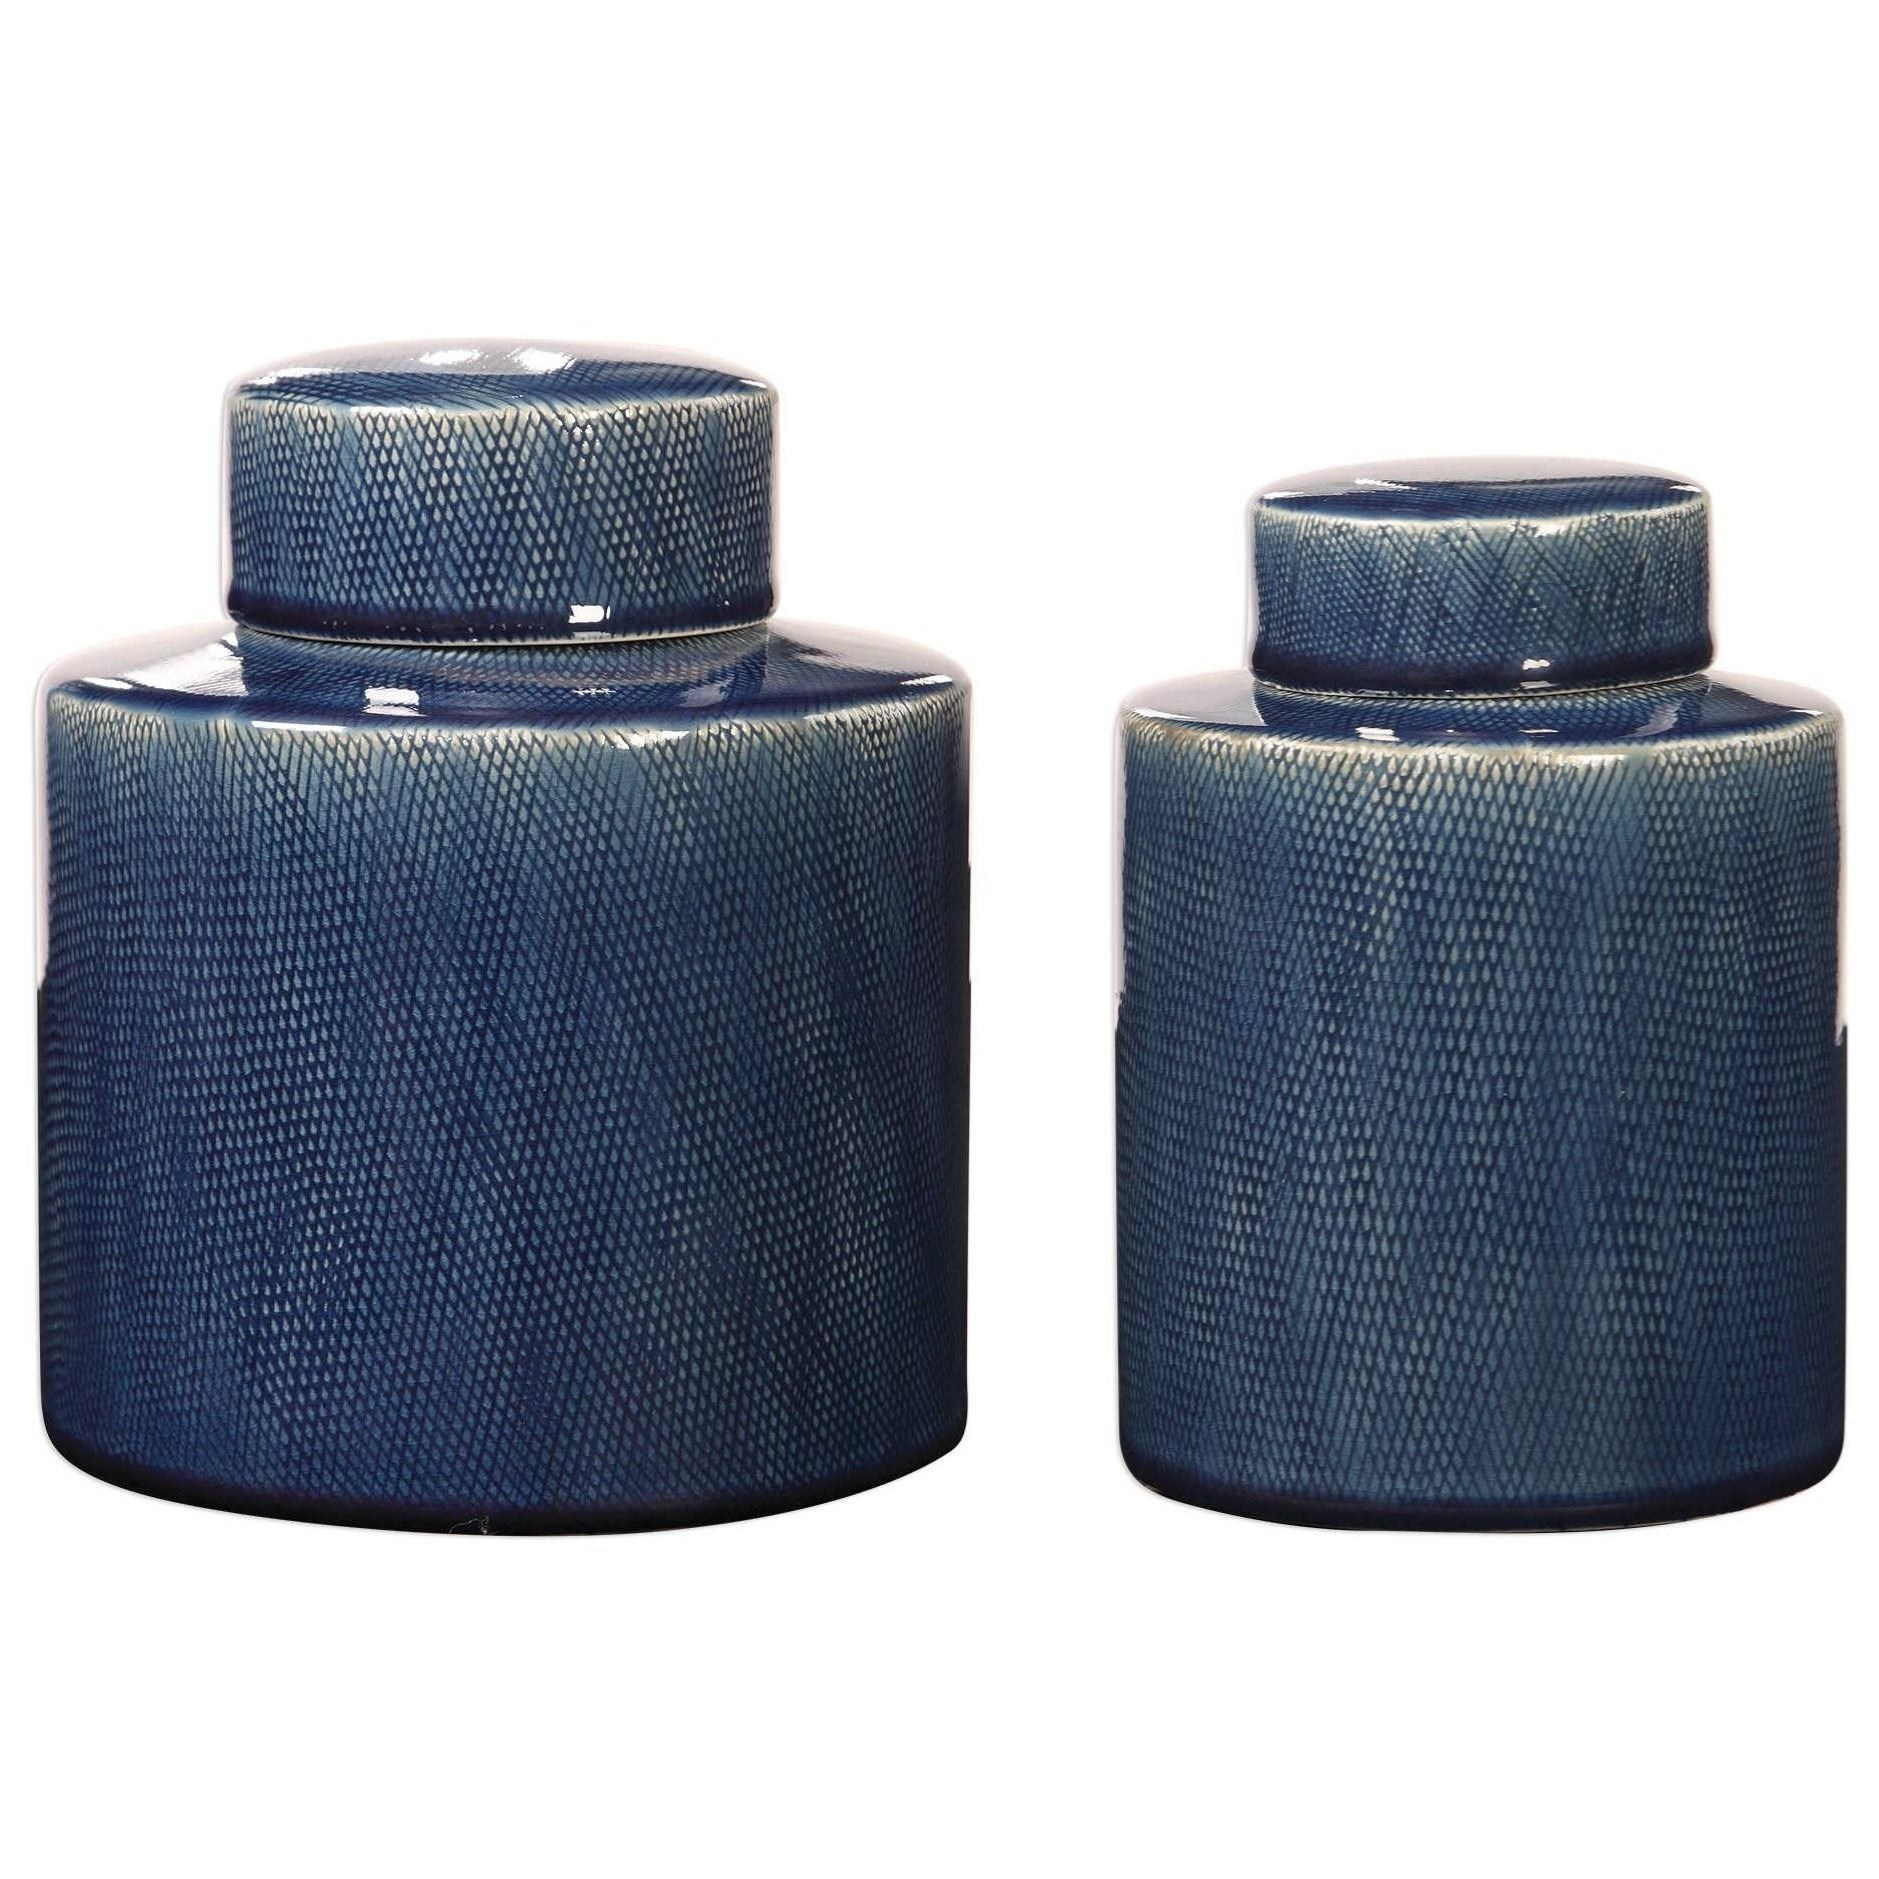 Accessories Saniya Blue Containers, S/2 by Uttermost at Suburban Furniture